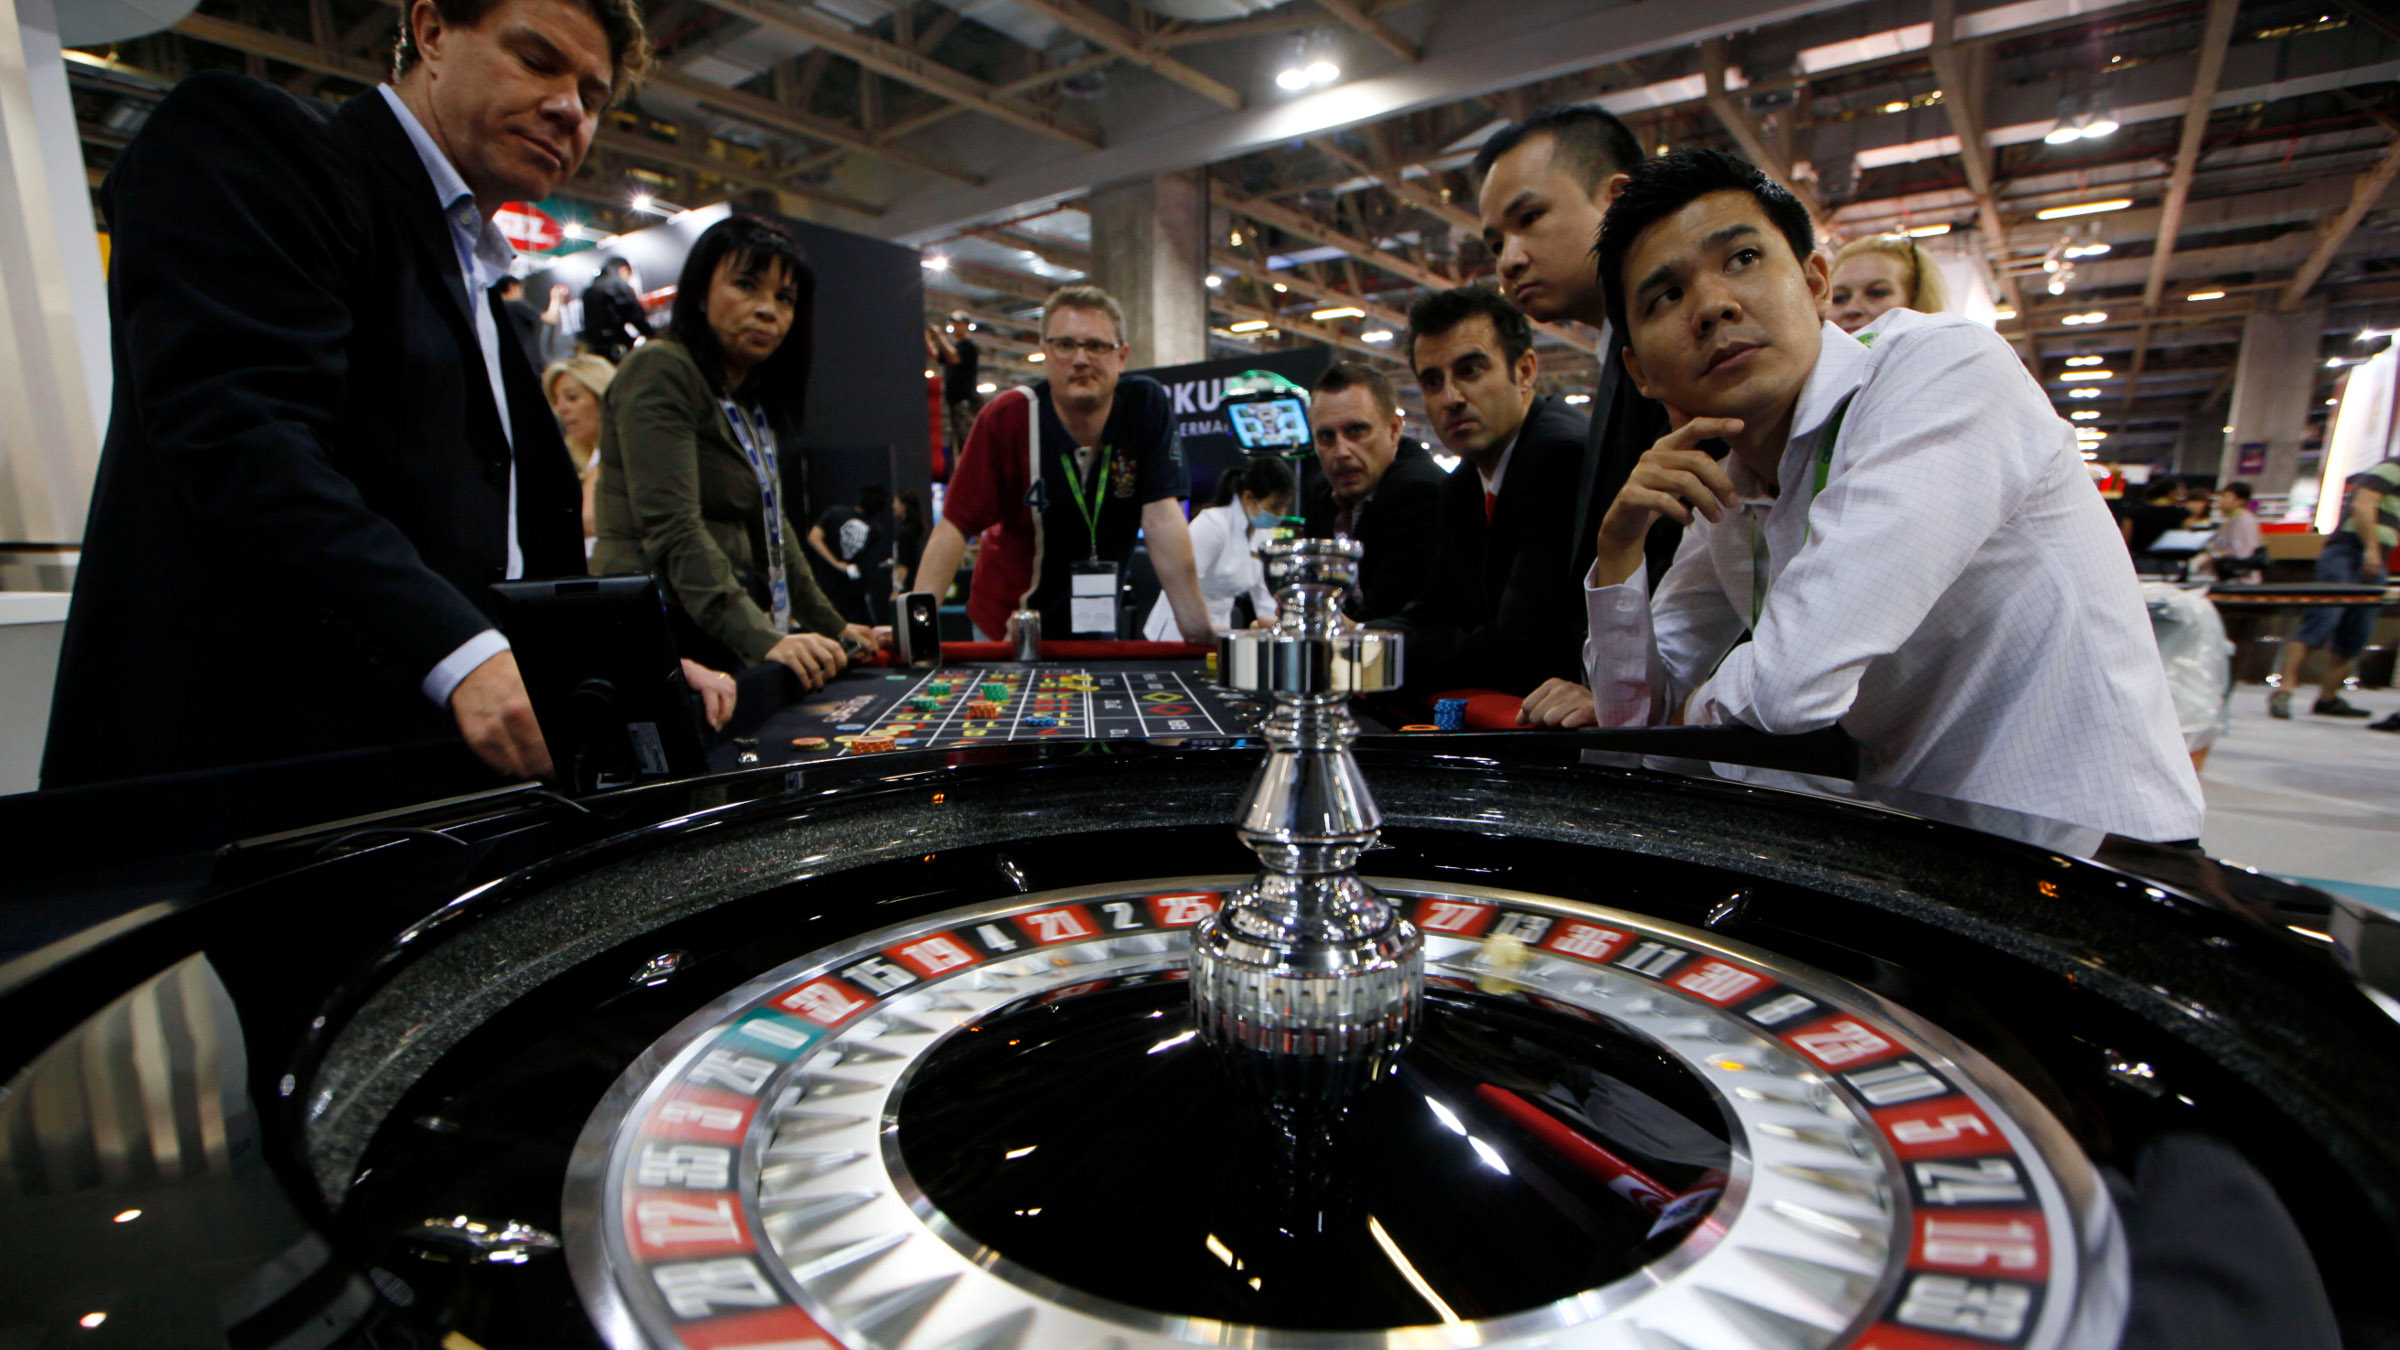 Exhibitor staff members sit in front of the roulette at a gambling table at Gaming Expo Asia in Macau Tuesday, May 22, 2012. The Global Gaming Expo Asia held between May 22-24 is a trade show and conference for the Asian gaming market.  (AP Photo/Kin Cheung)